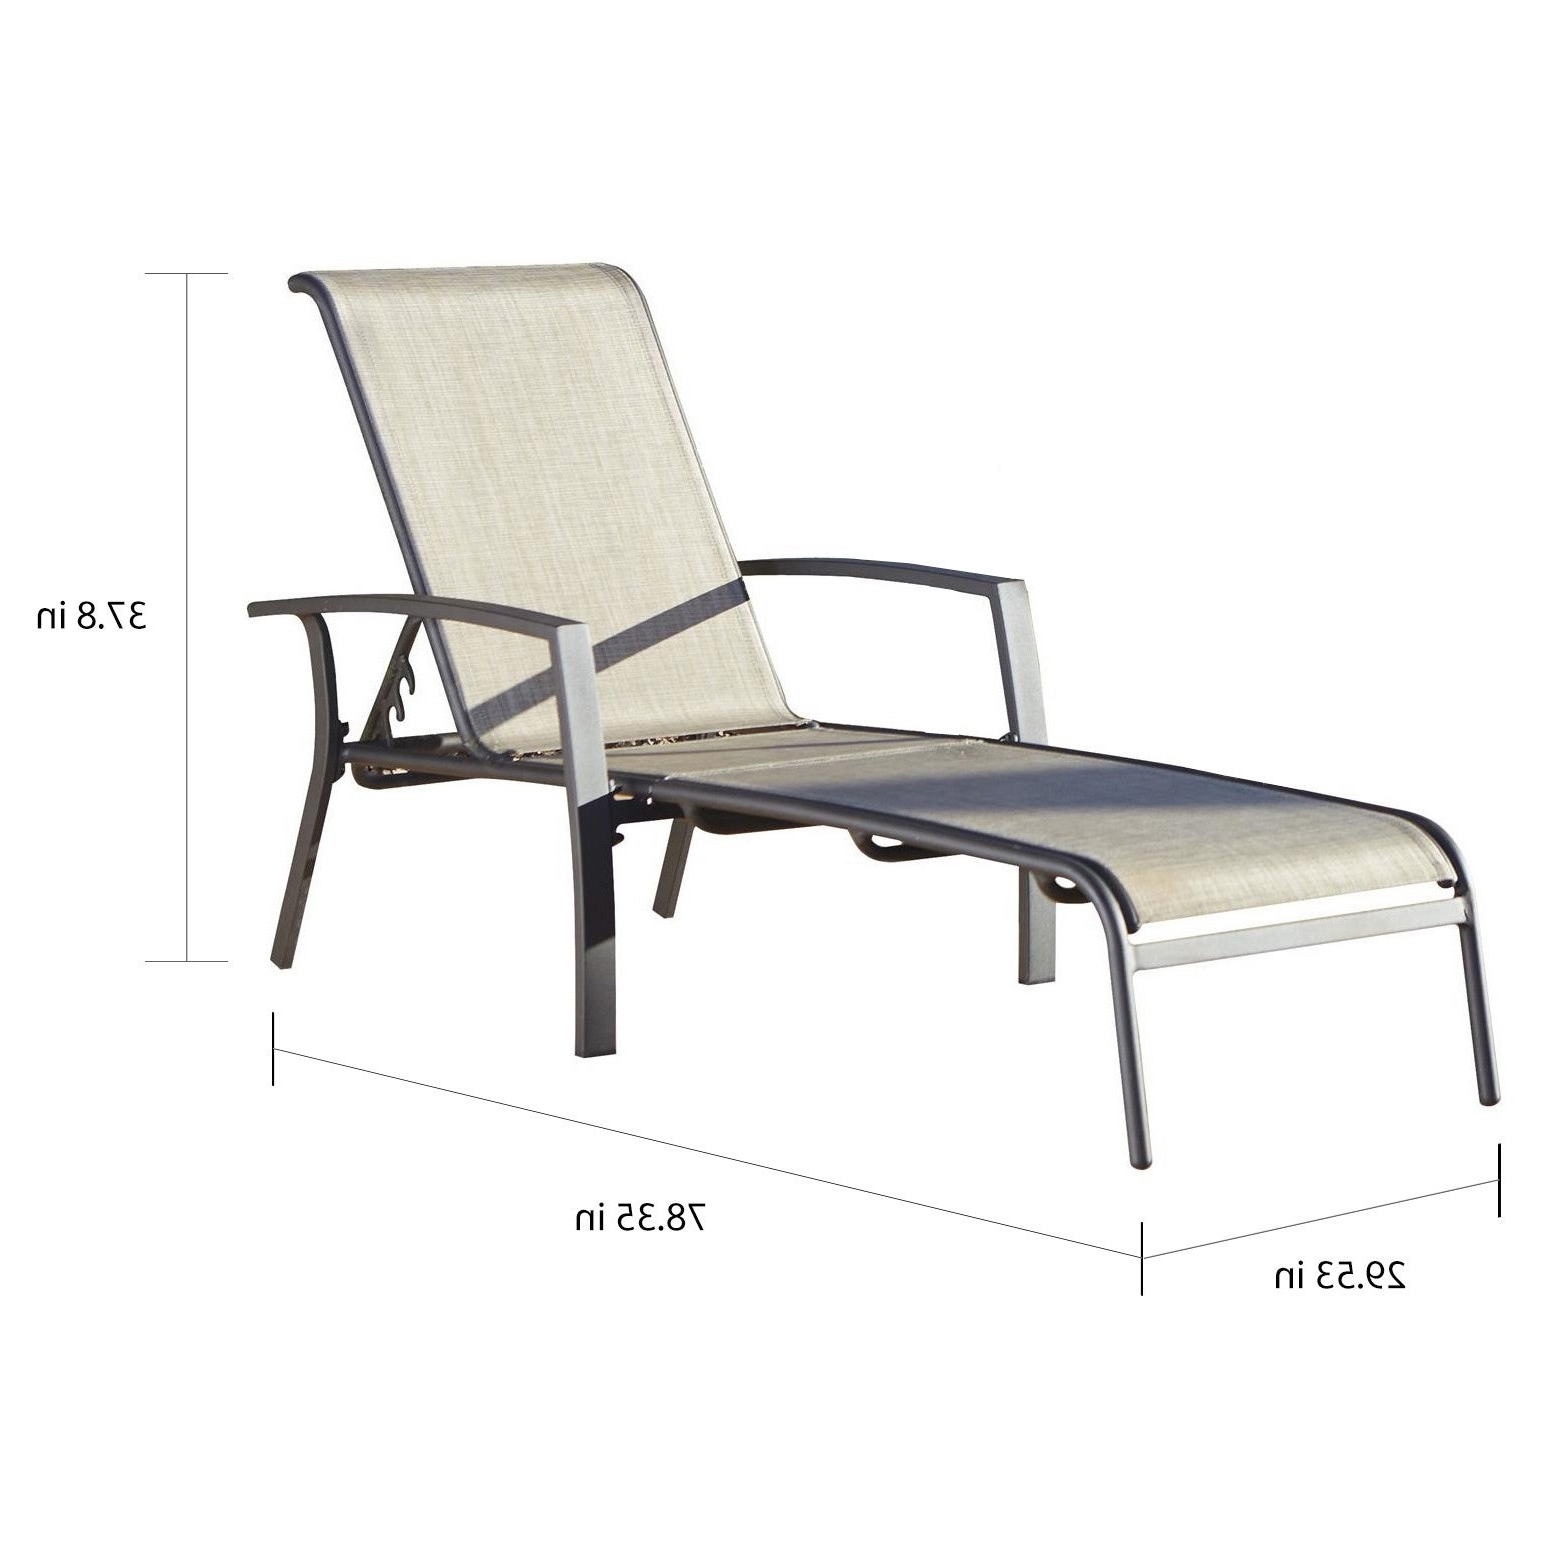 Cosco Outdoor Aluminum Chaise Lounge Chairs Throughout Most Current Cosco Outdoor Aluminum Chaise Lounge Chair (set Of 2) (View 2 of 25)